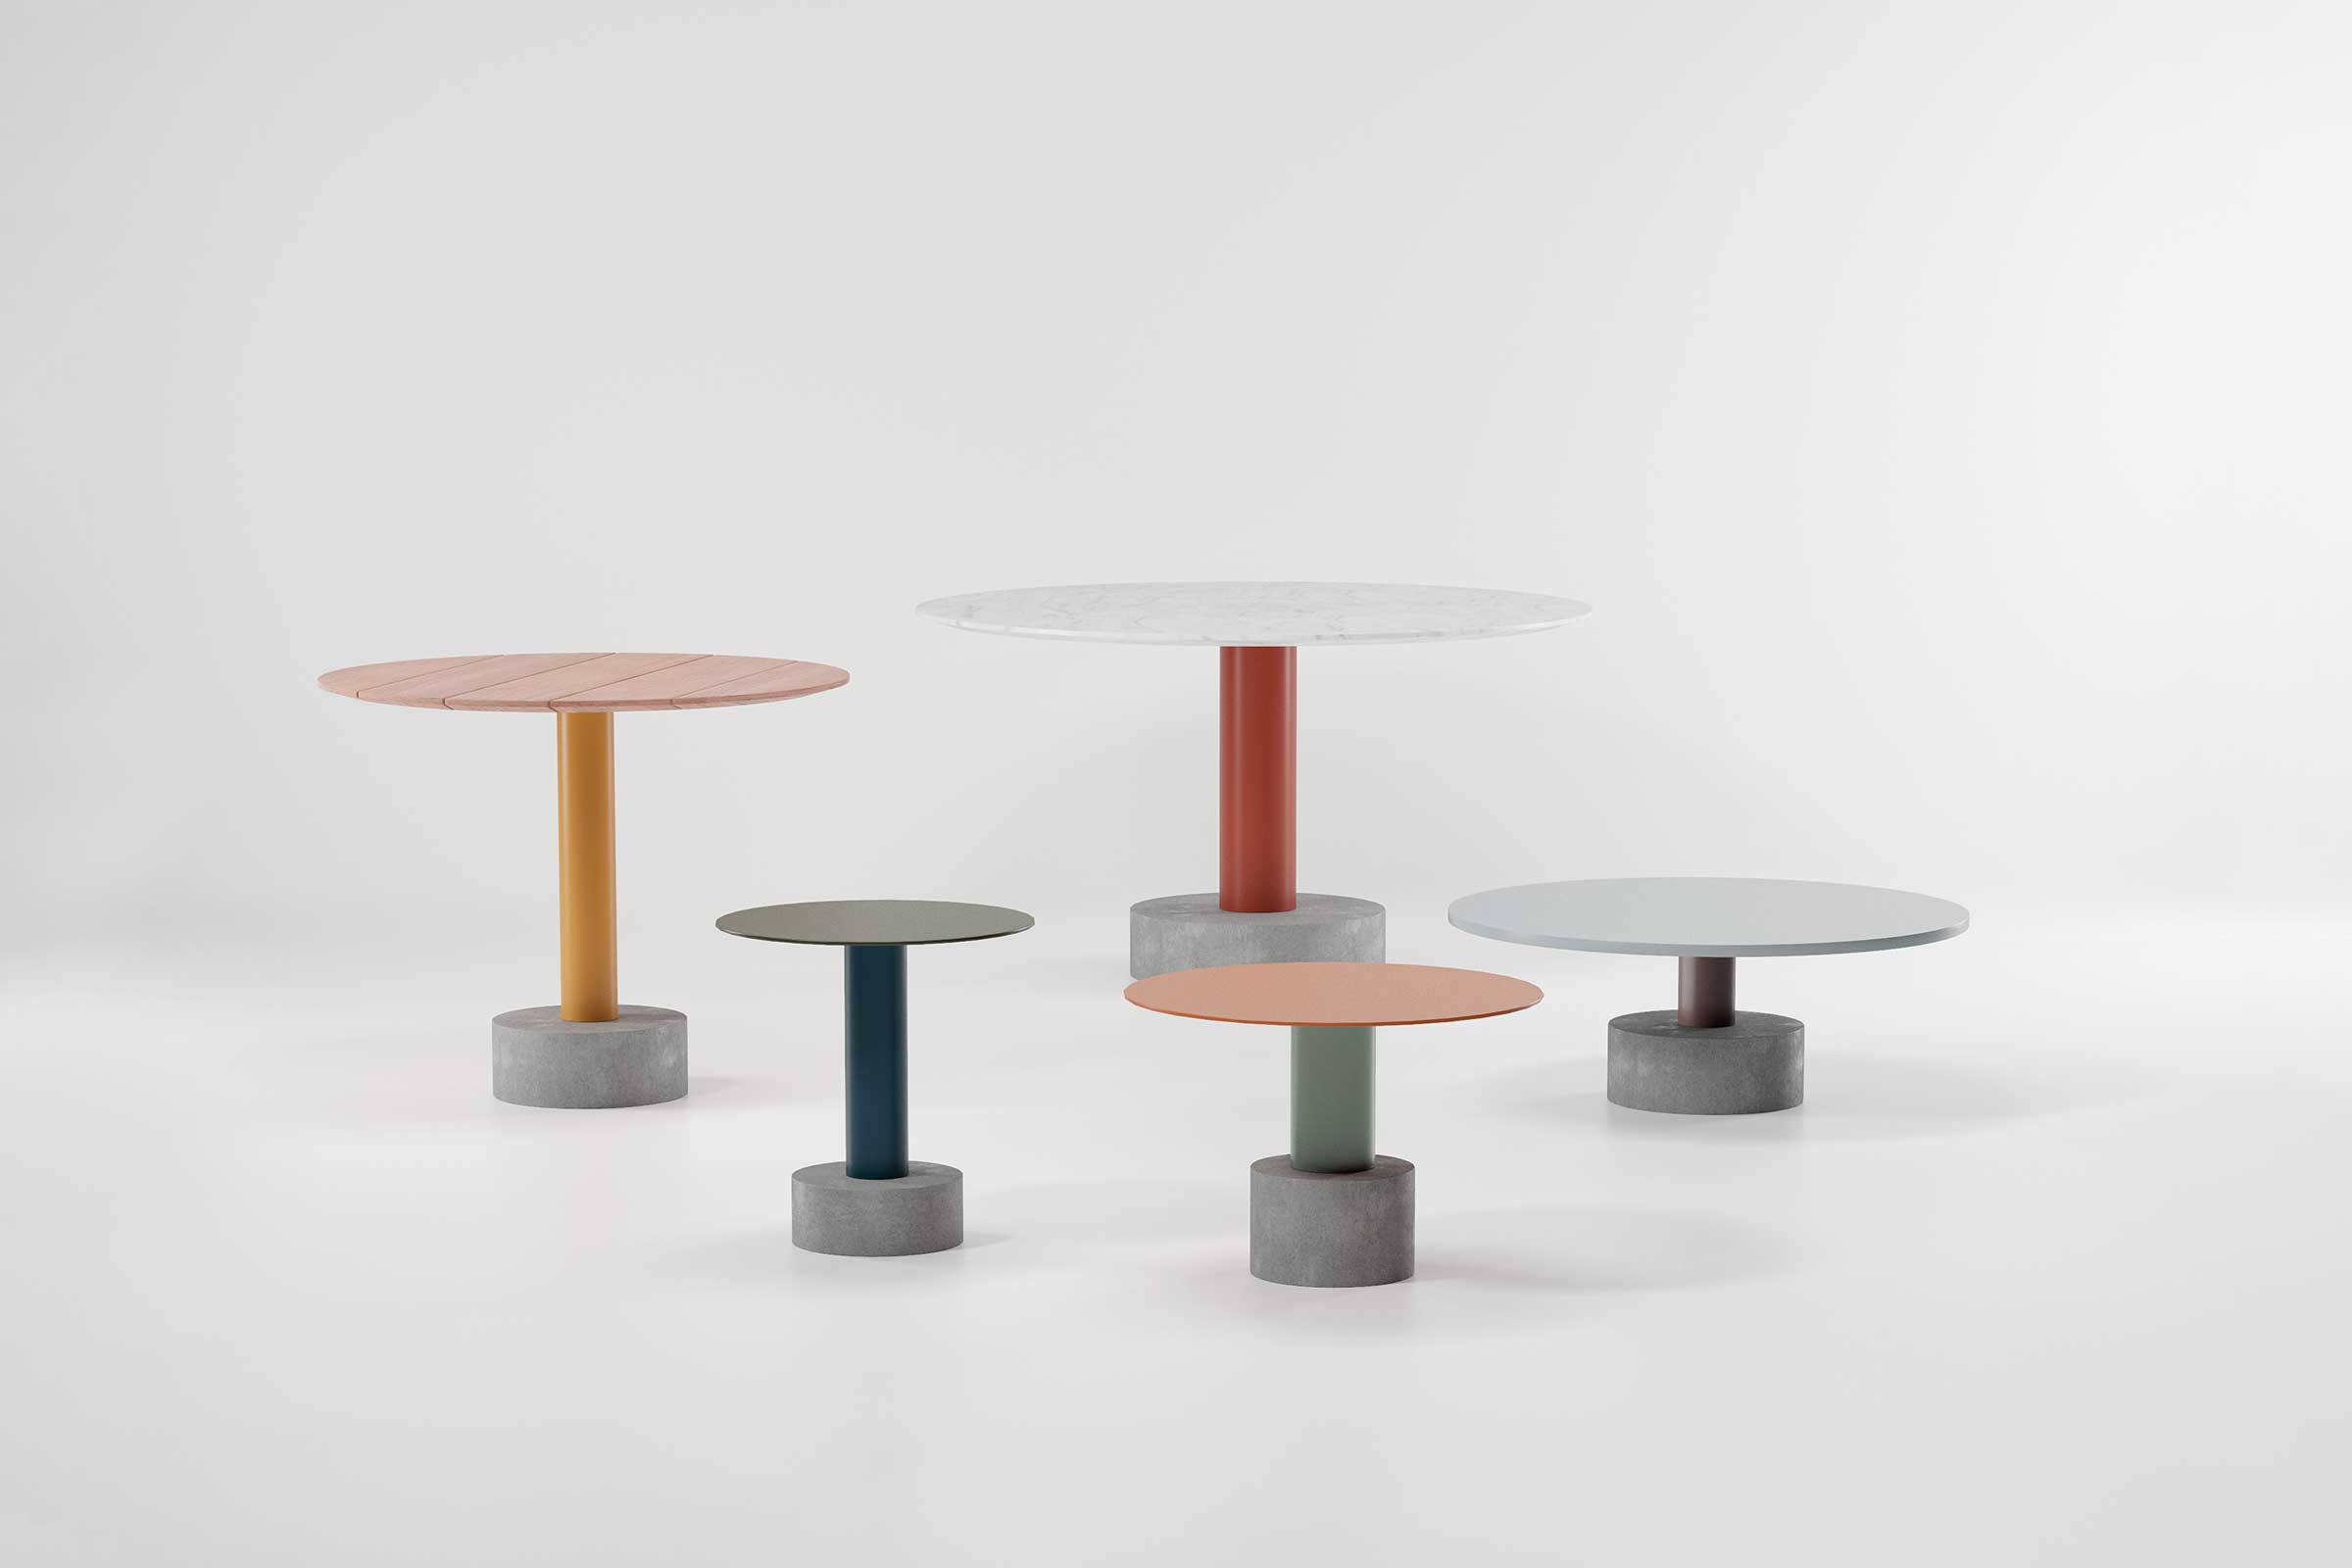 foto_slider_1625_0_roll-TABLES_COLLECTION.jpg